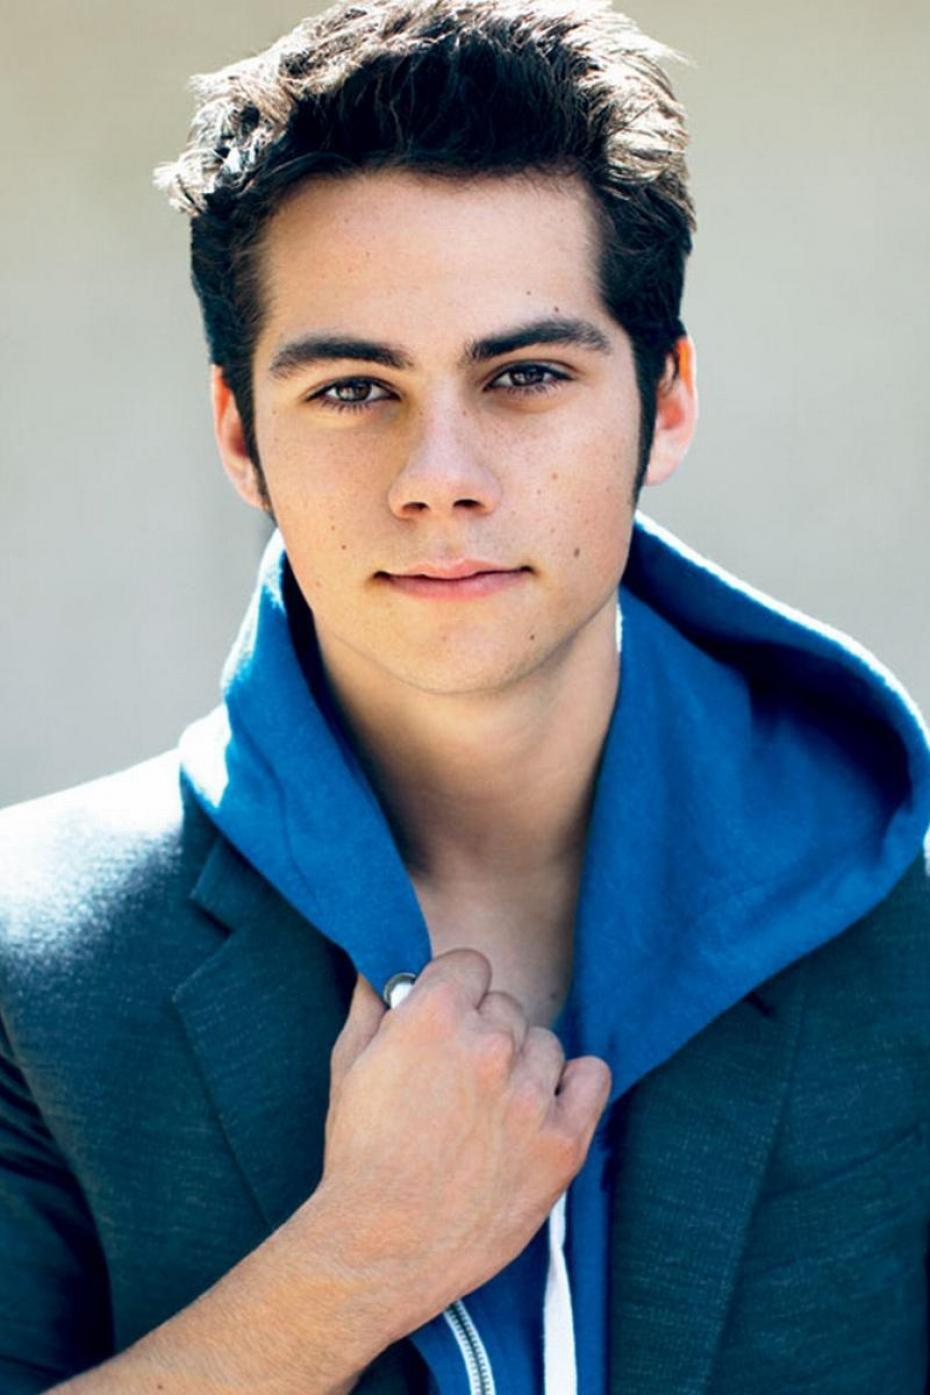 Dylan Hot O'Brien http://t.co/fGS0ZNWBcy